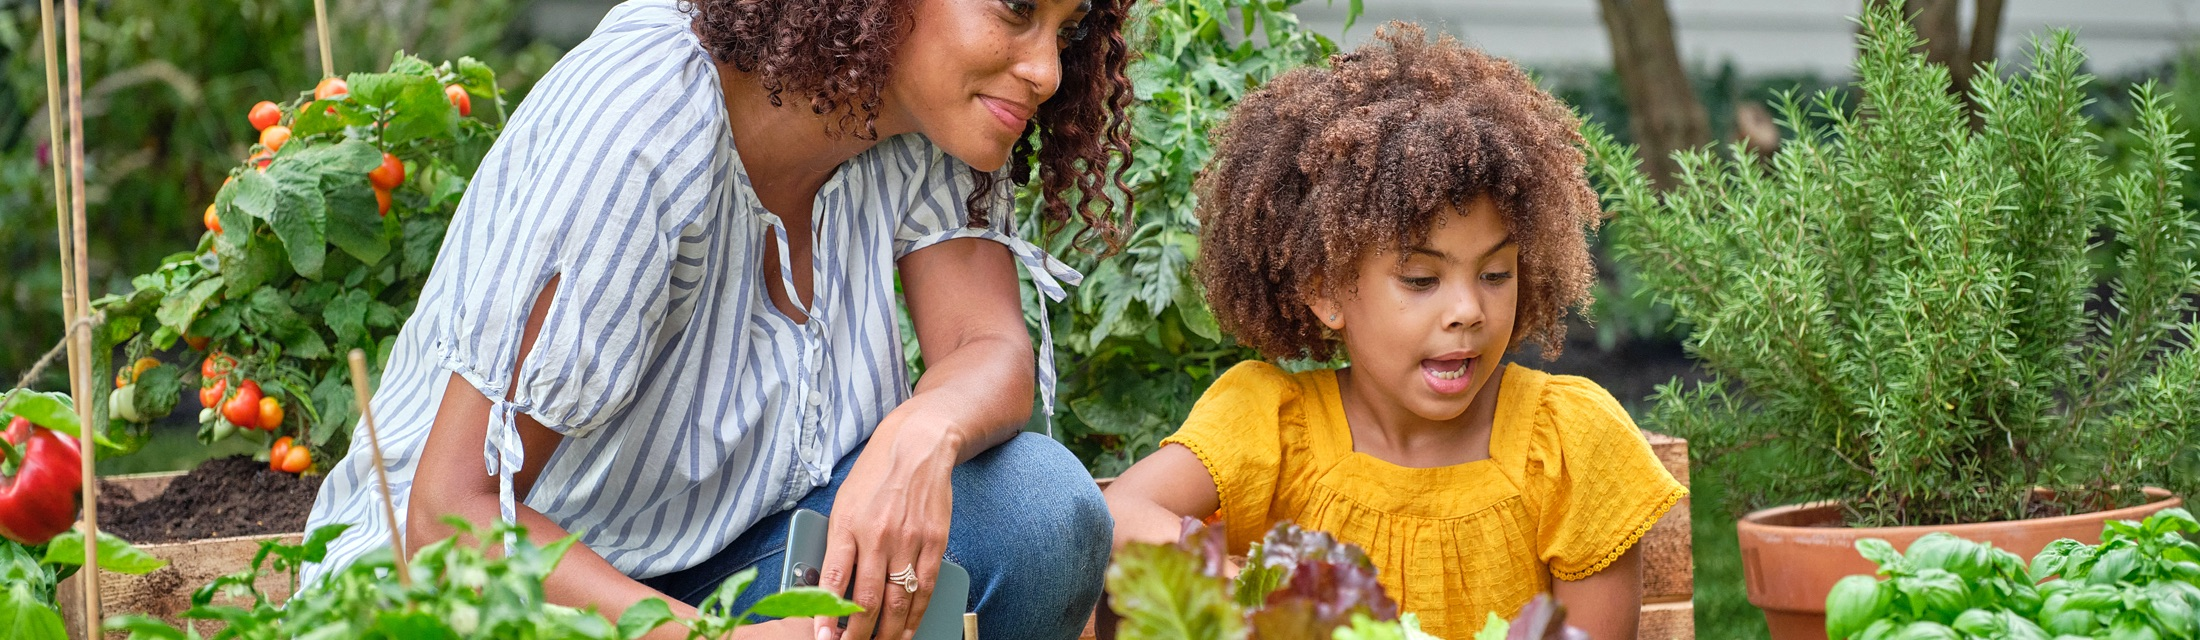 Mother and daughter gardening together.